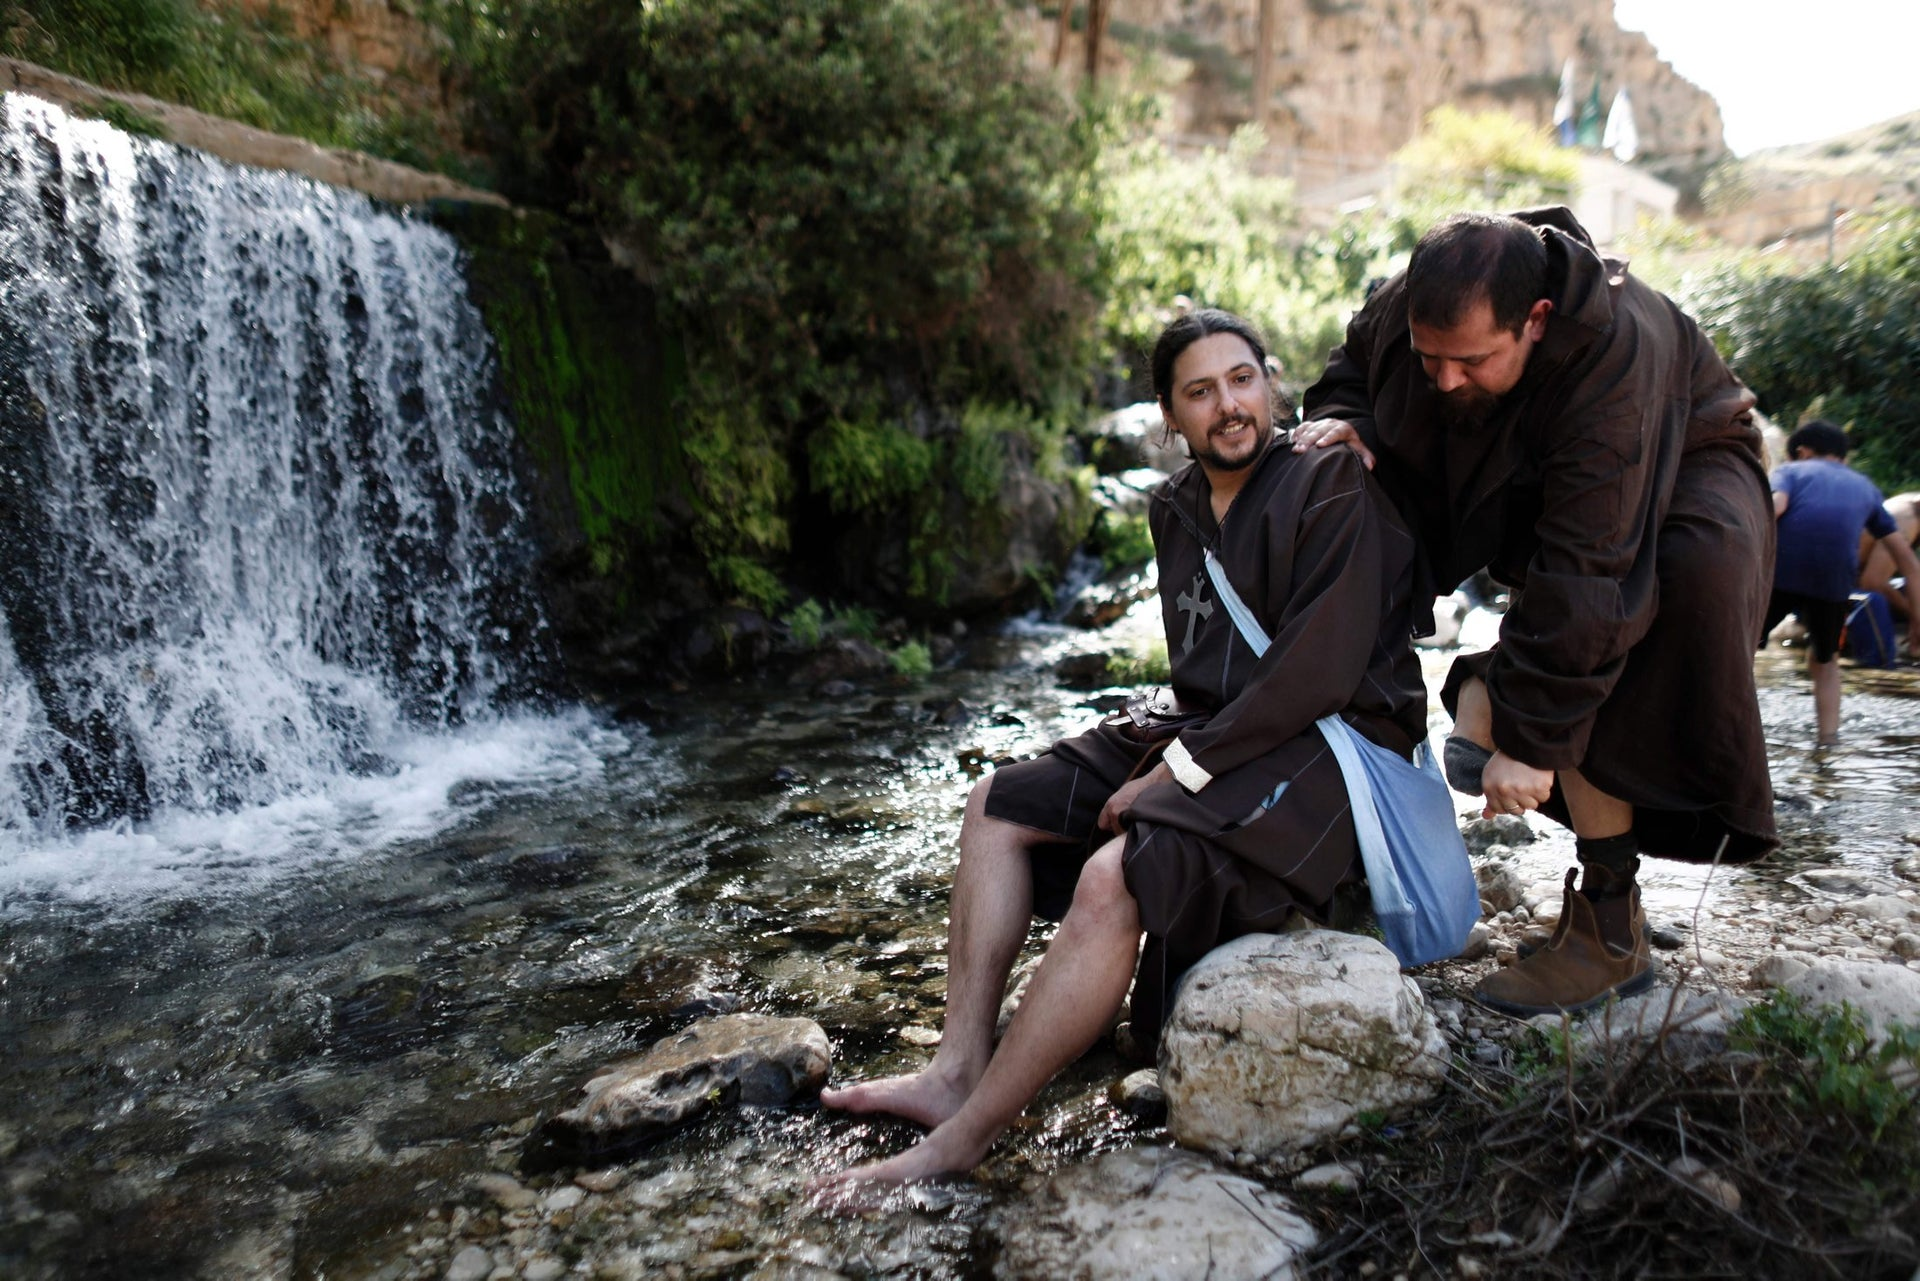 Israeli enthusiasts walk in the natural spring in Ein Fawwar, near the West Bank city of Jericho, as they take part in a three day walk on March 11, 2016 between the West Bank city of Jericho and Jerusalem, as part of an event to re-enact the Curaders' journey.